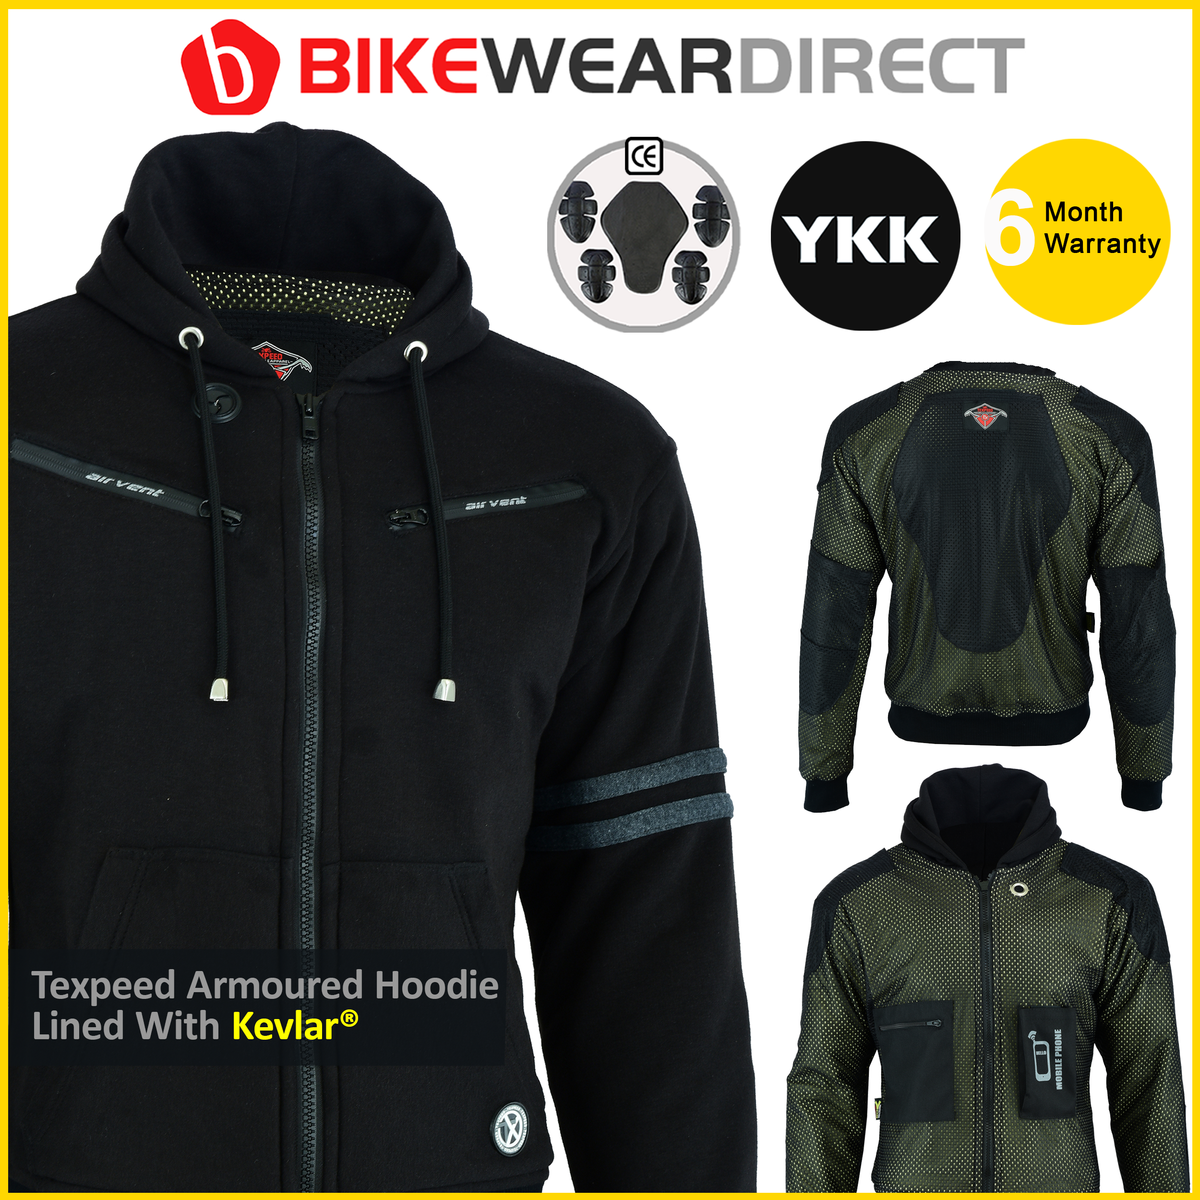 Texpeed Black & Grey Kevlar Lined Hoody